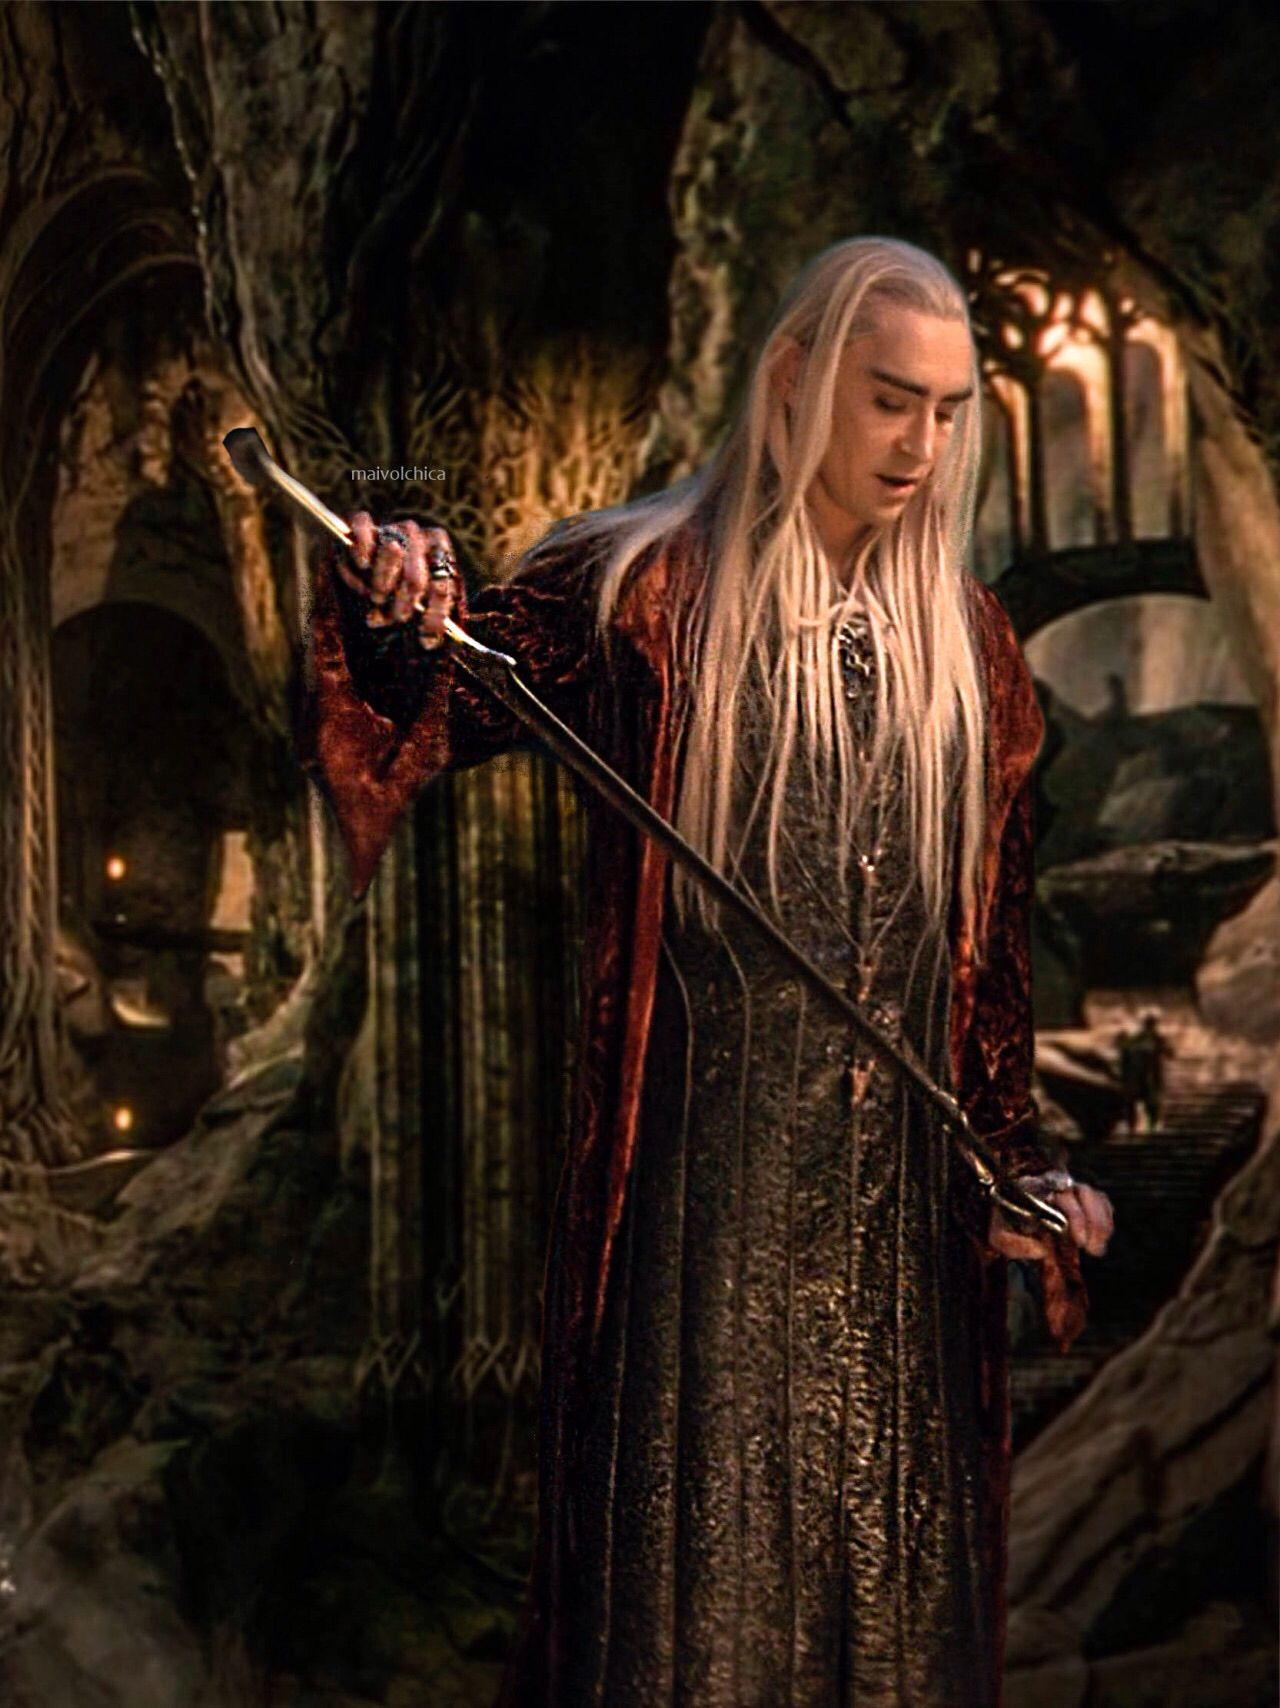 Desolation Thranduil of smaug armor pictures foto